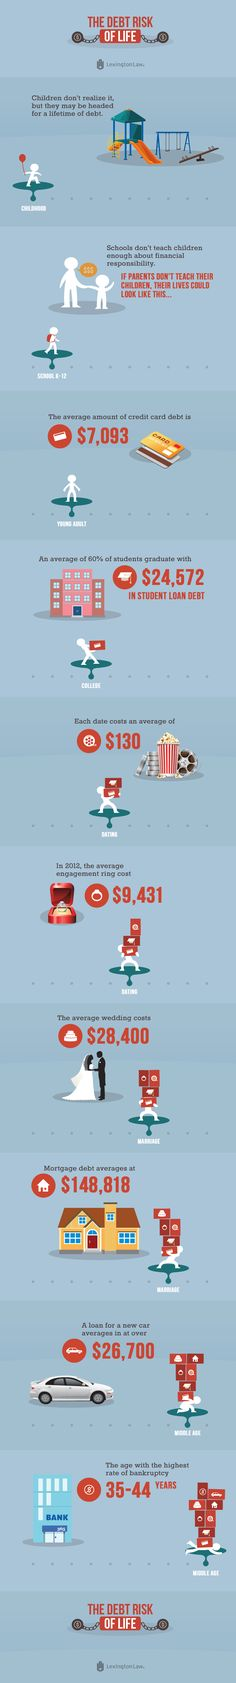 The Debt Risk of Life [#Infographic] From going to school, to going on a date, to getting married, life has hidden price tags that have been sending many Americans down a path to major debt and bankruptcy. Some of life's most exciting events also bring with them the possibility to build major debts and harm our credit.